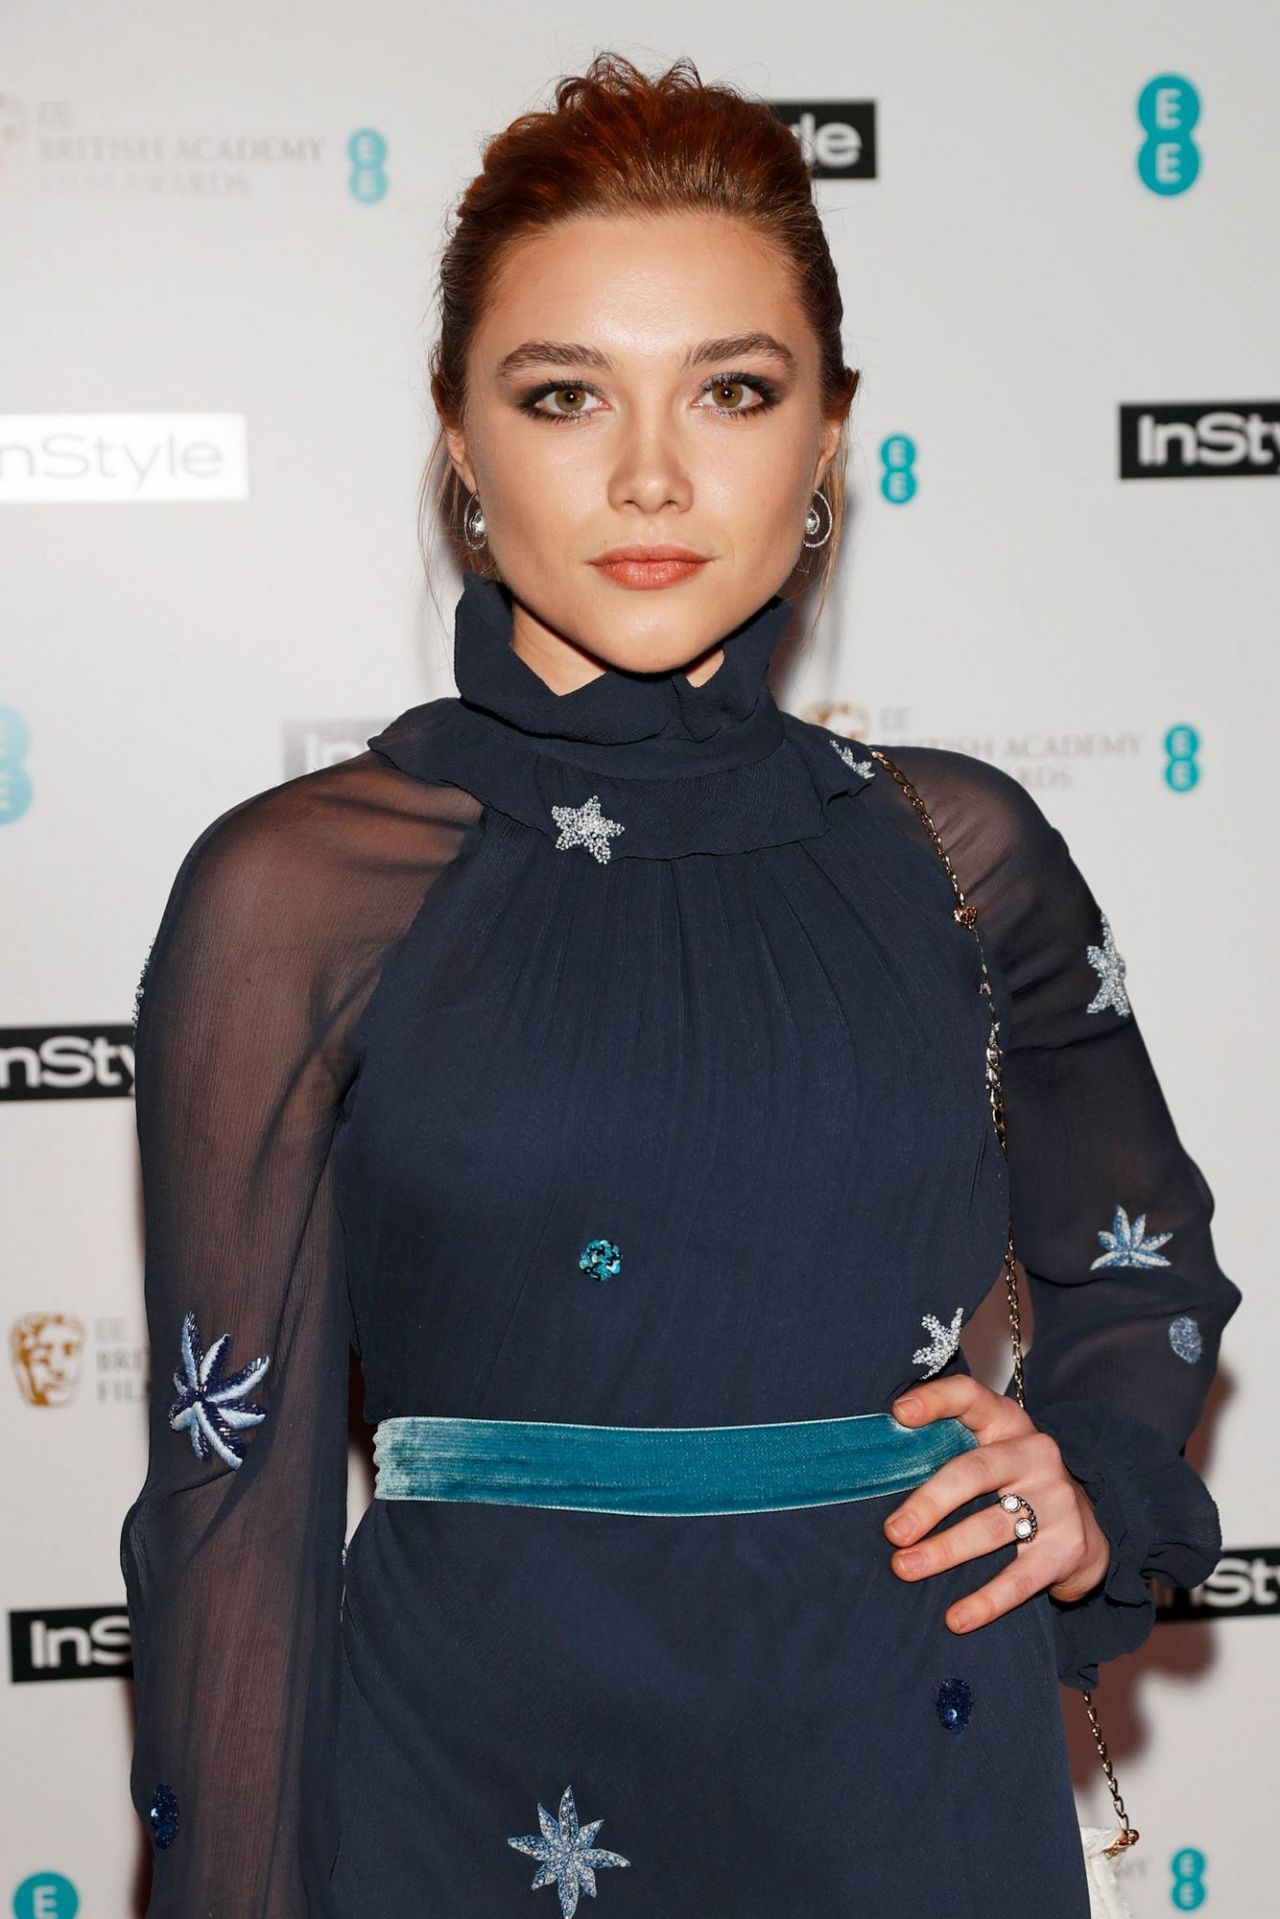 Florence Pugh 2019 >> Florence Pugh Ee Instyle Party In London 02 06 2019